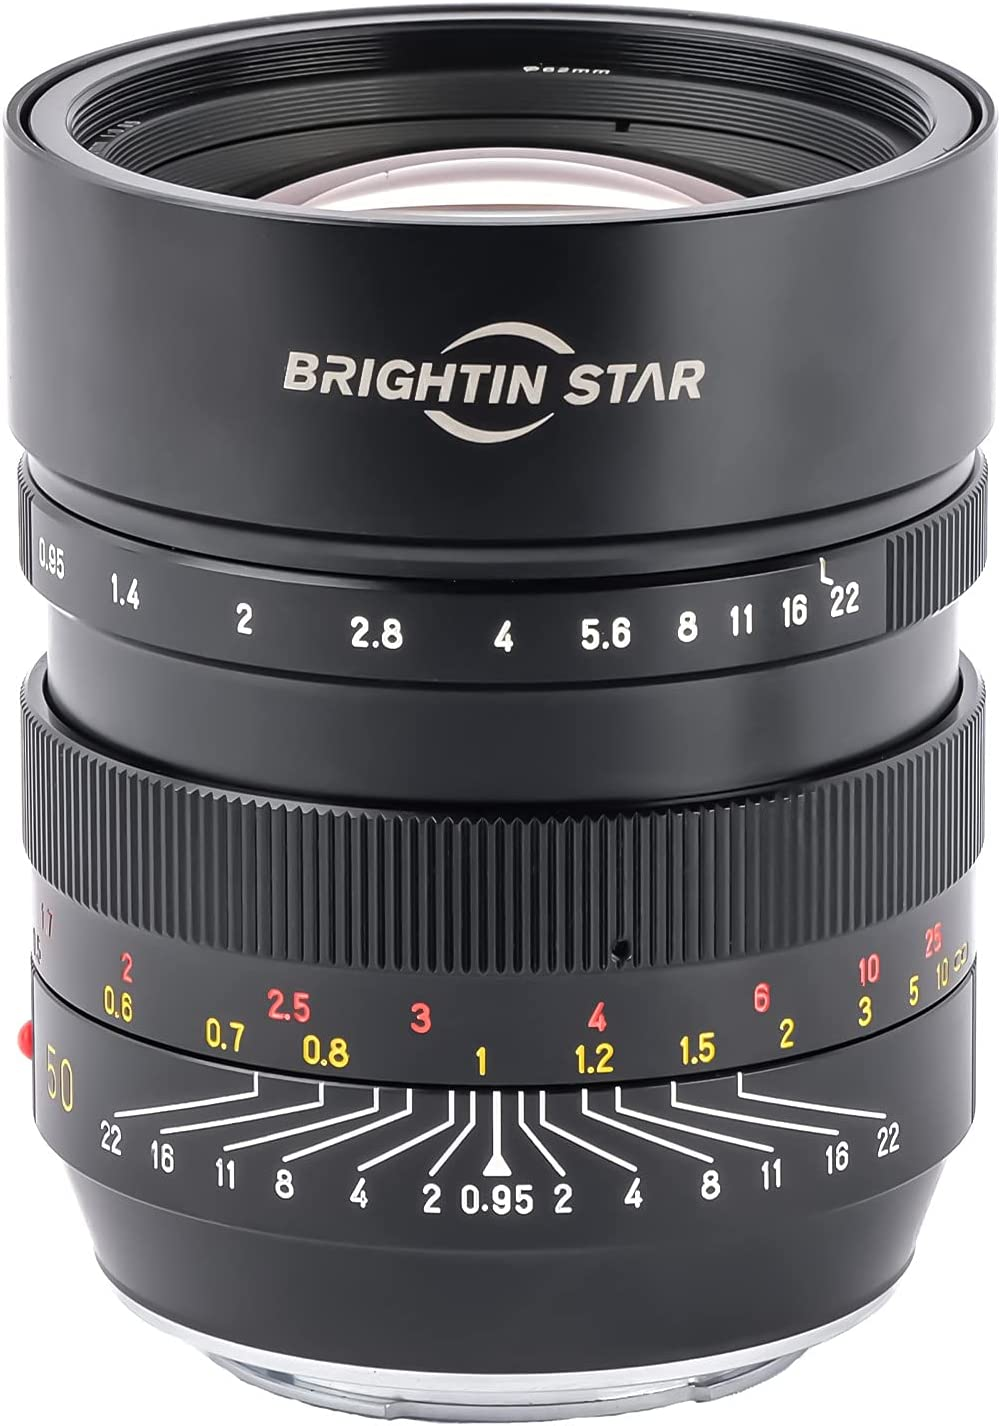 Brightin Star 50mm F0.95 Full Aperture Max 42% OFF Large Mirrorless Frame Ca Free shipping on posting reviews